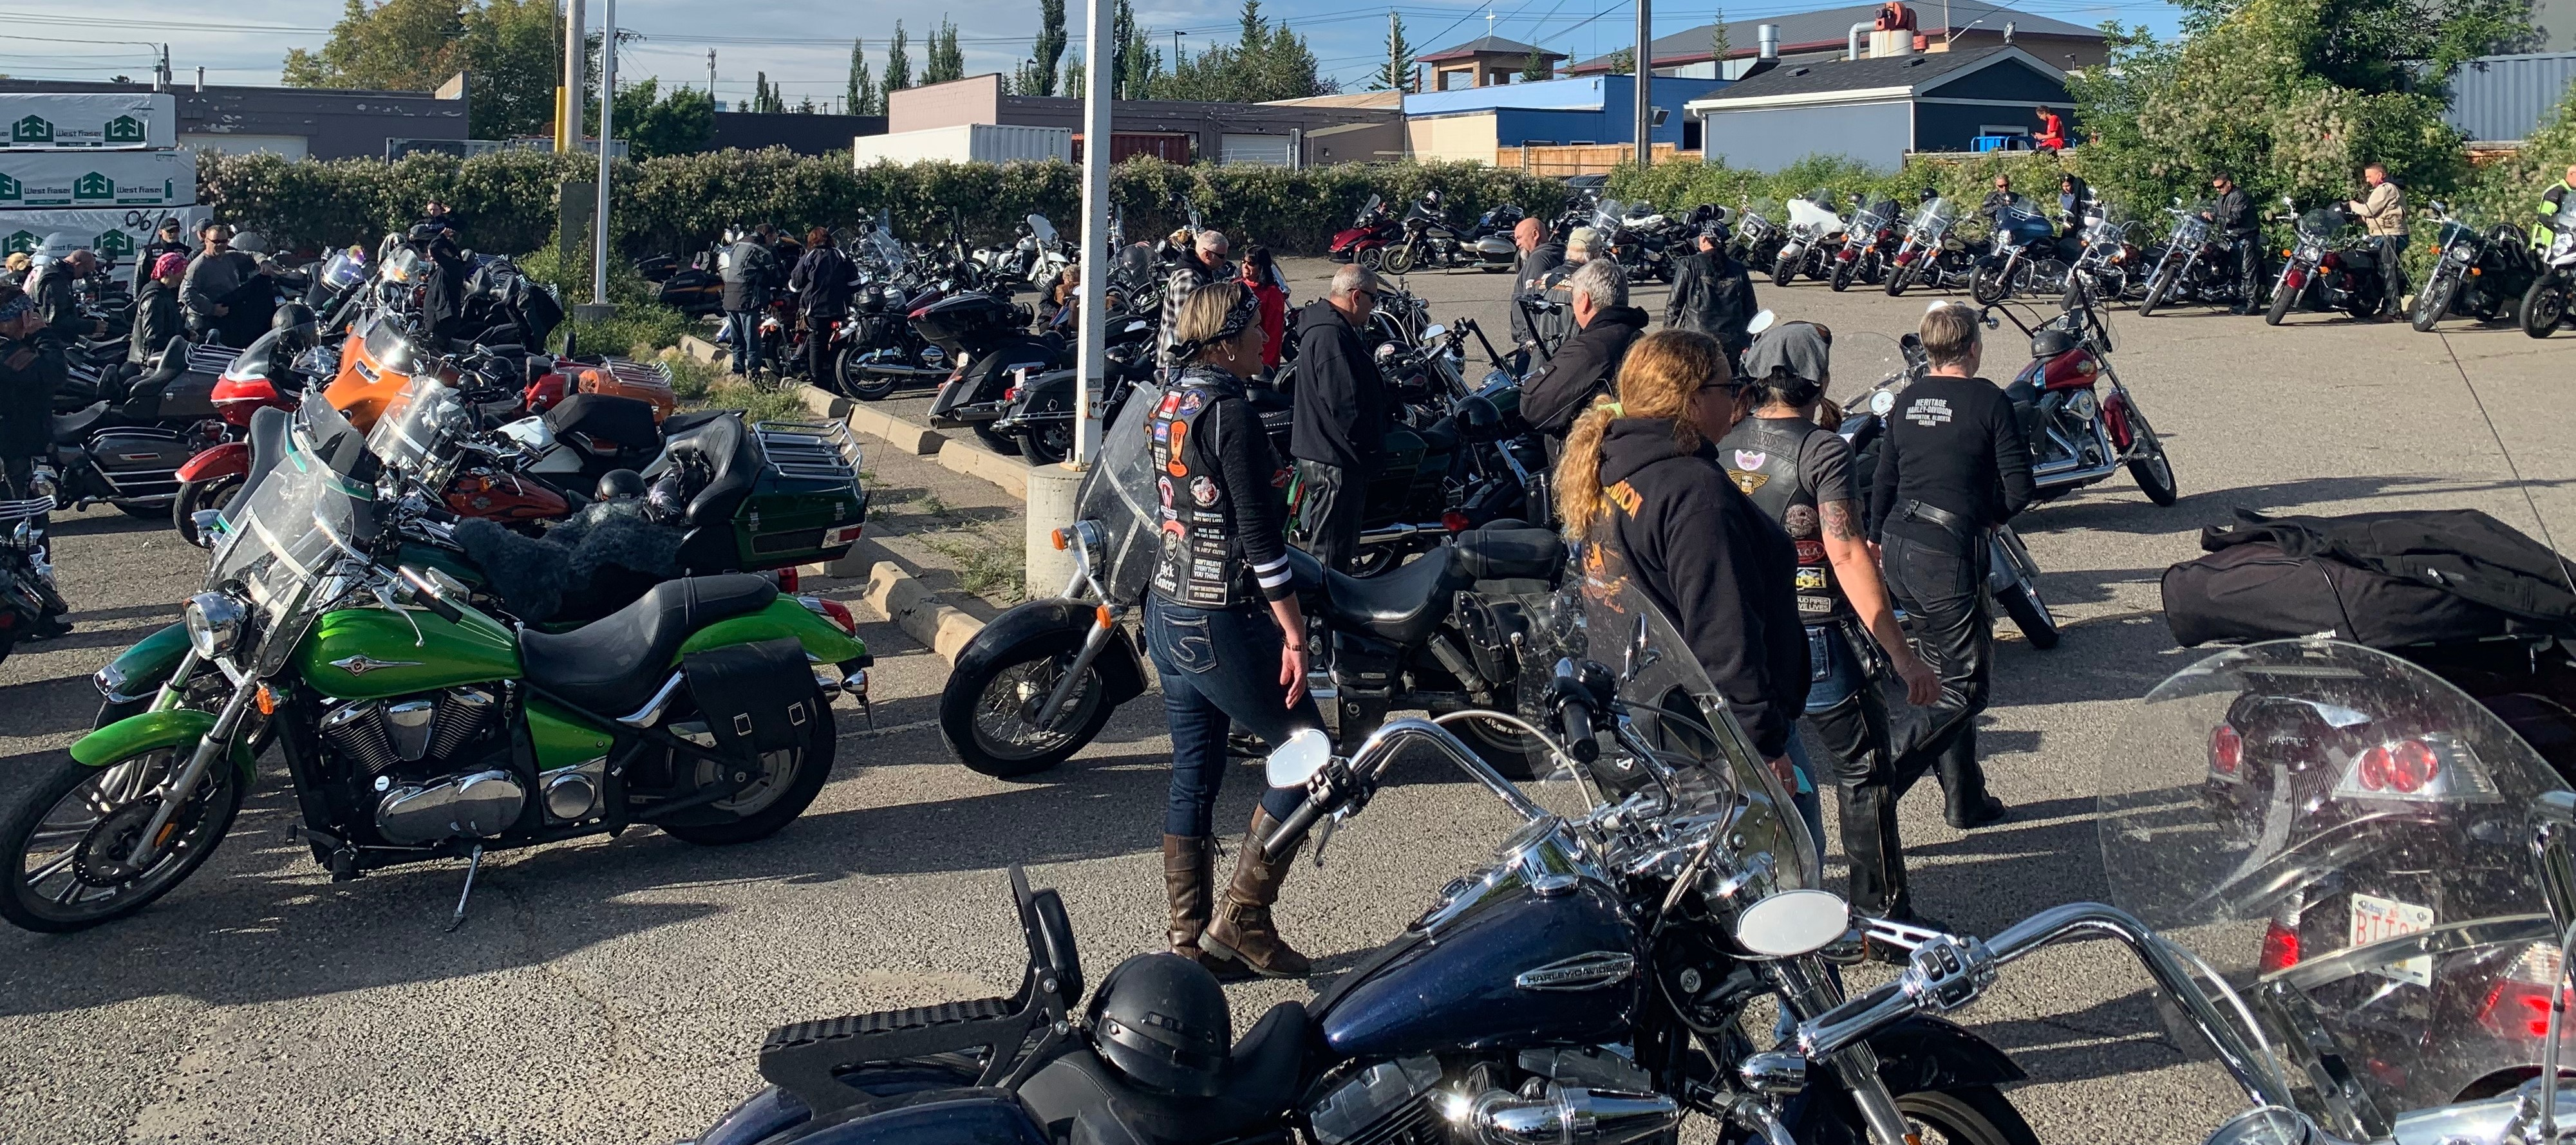 Calgary's Ride for Recovery looks to show community support for recovering addicts